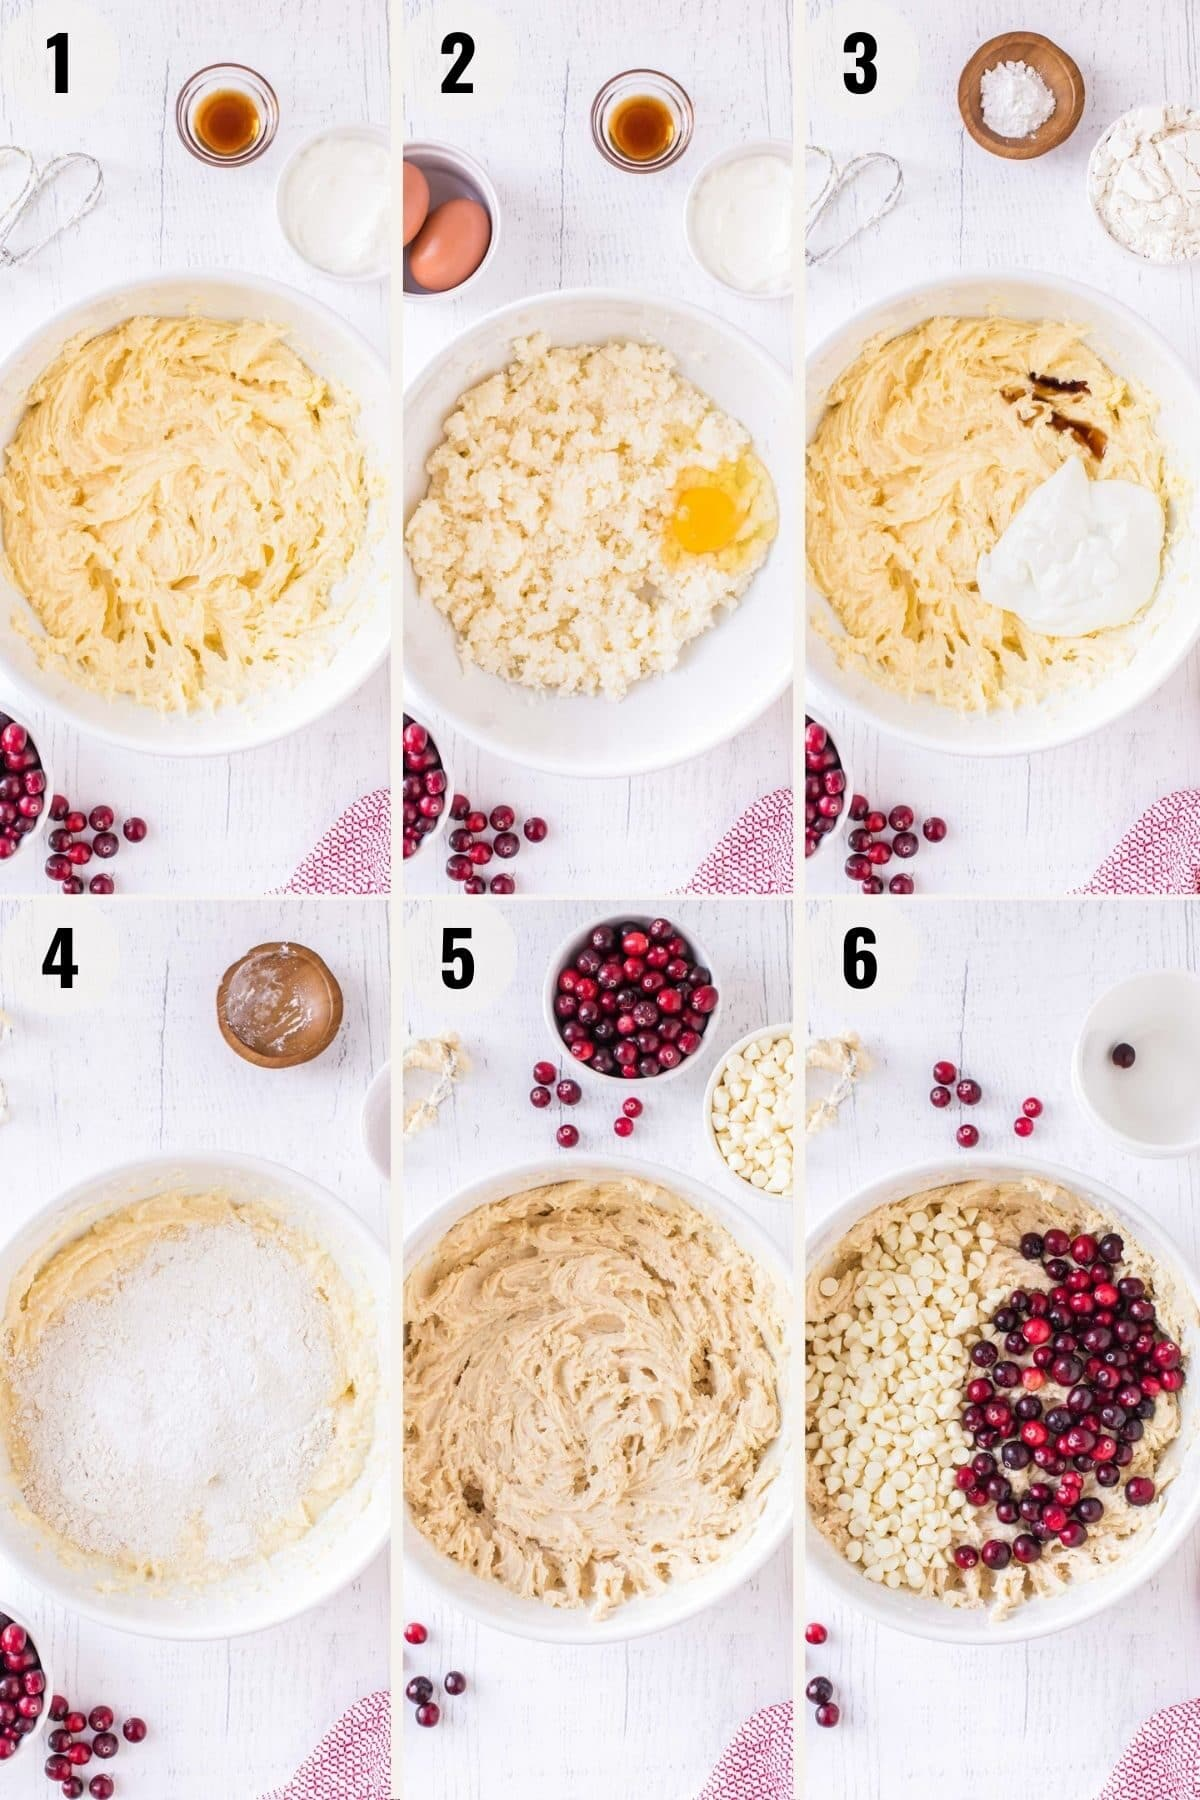 step by step photos showing cranberry cake batter being made